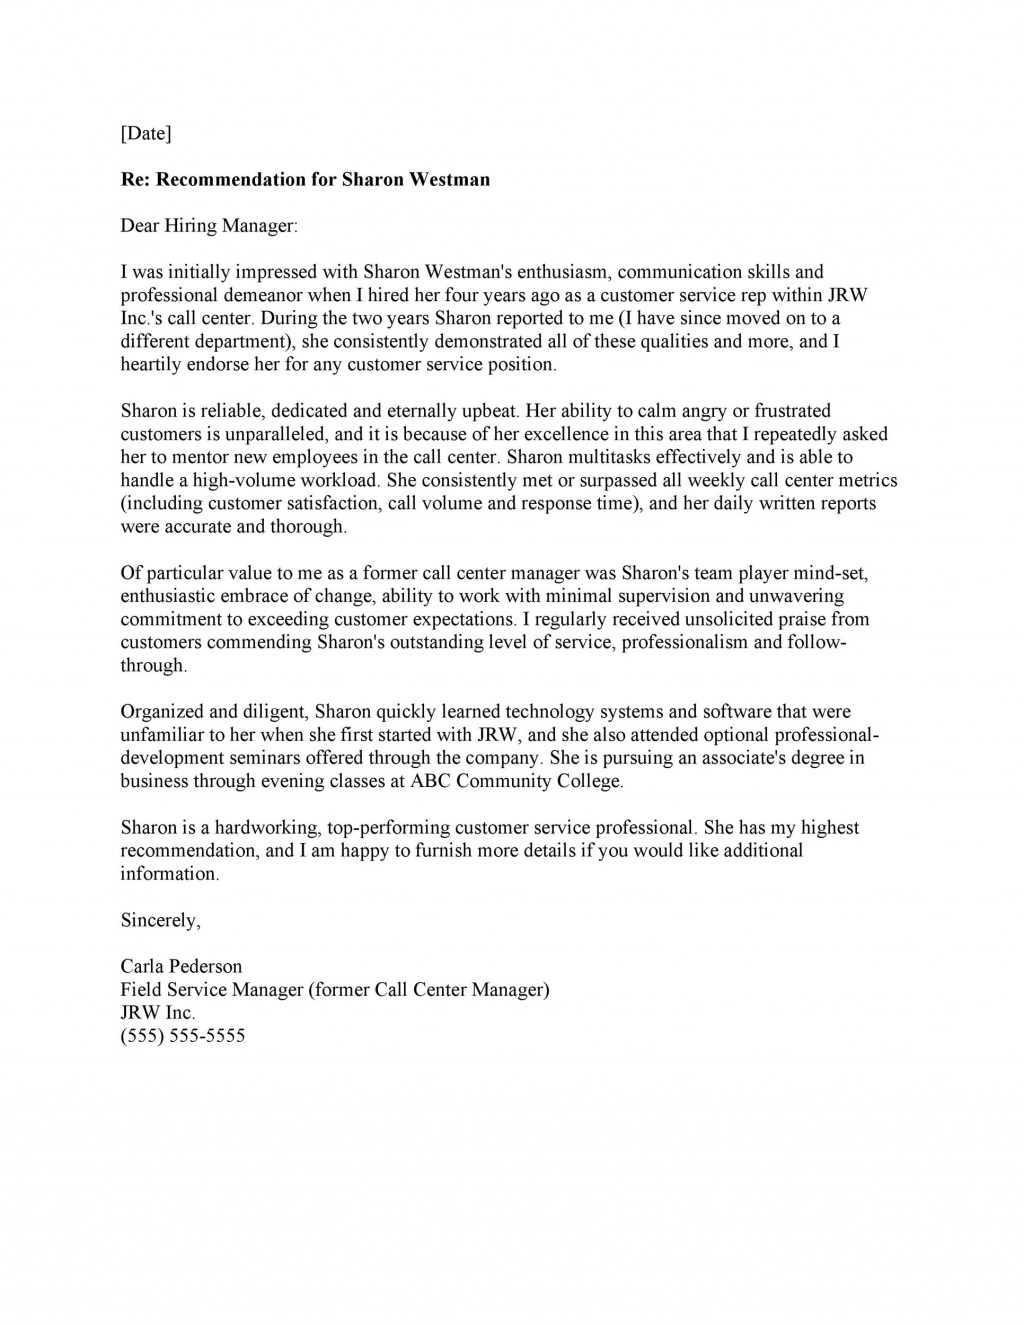 007 Fearsome Professional Reference Letter Template Inspiration  Nursing Free CharacterLarge